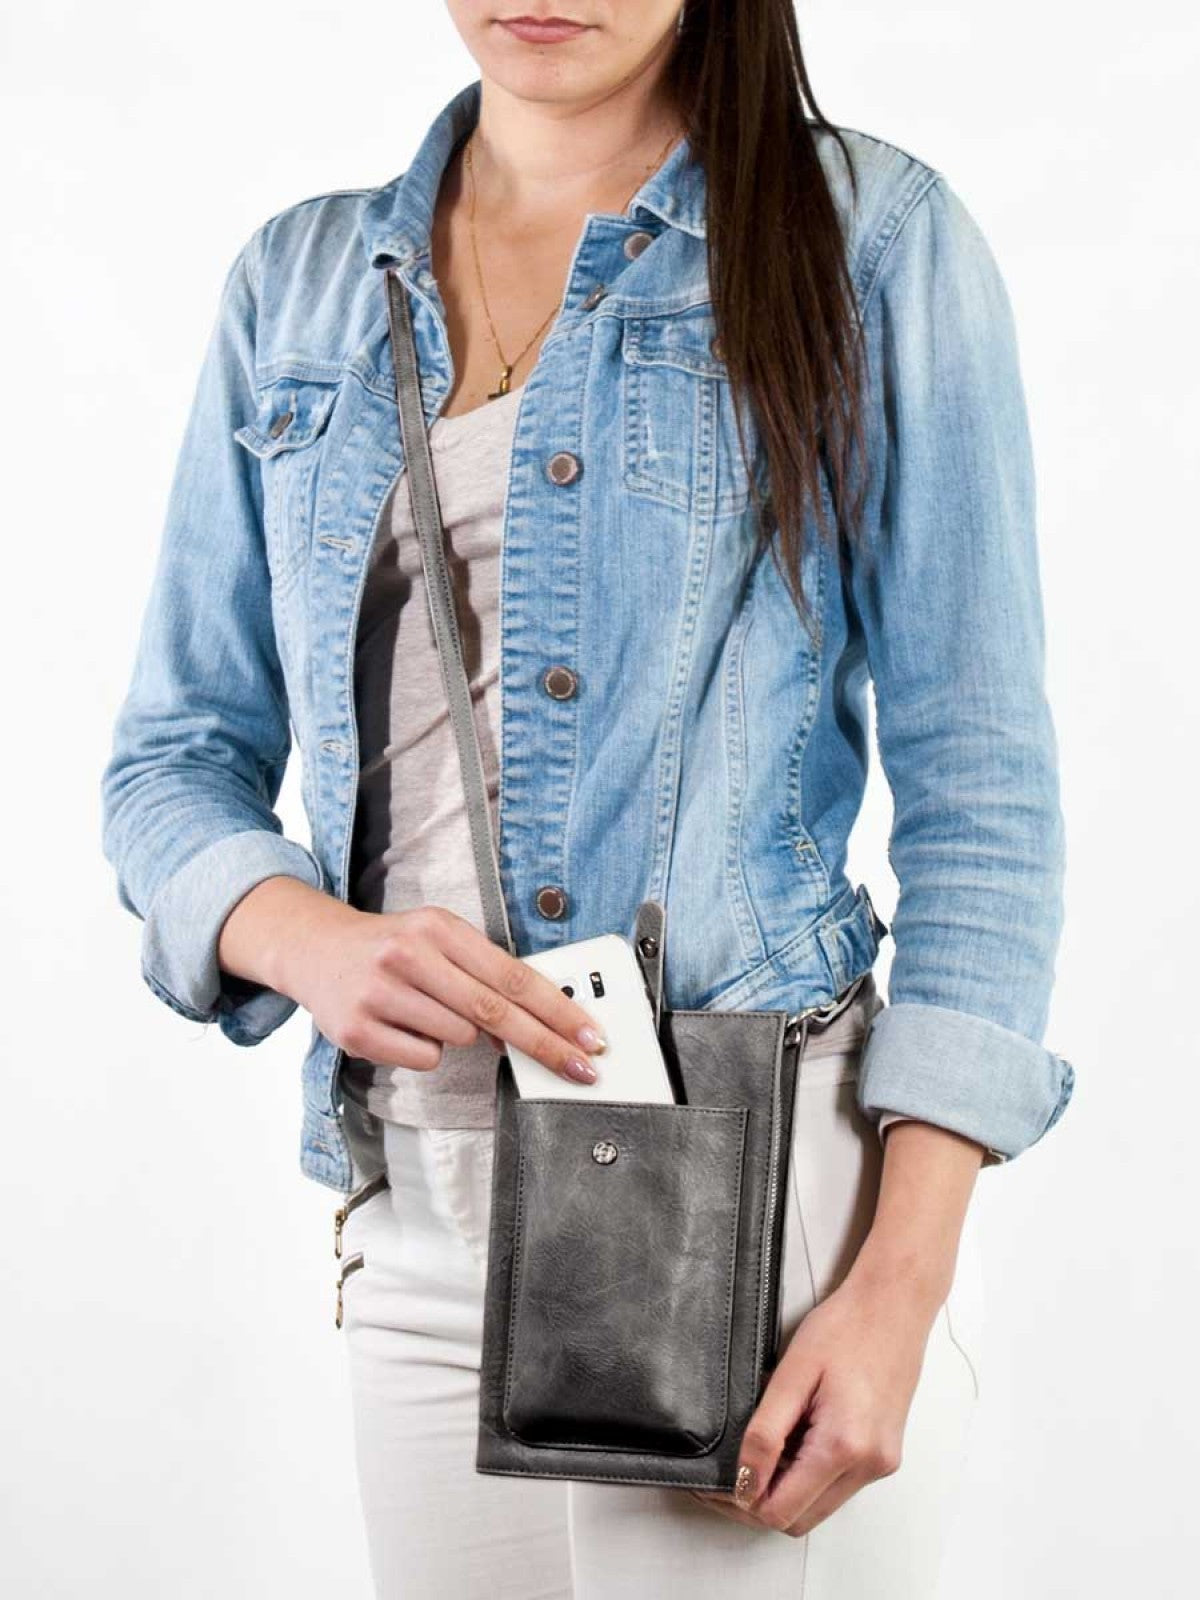 Smartphone Crossbody and Organizer - Blue Grey